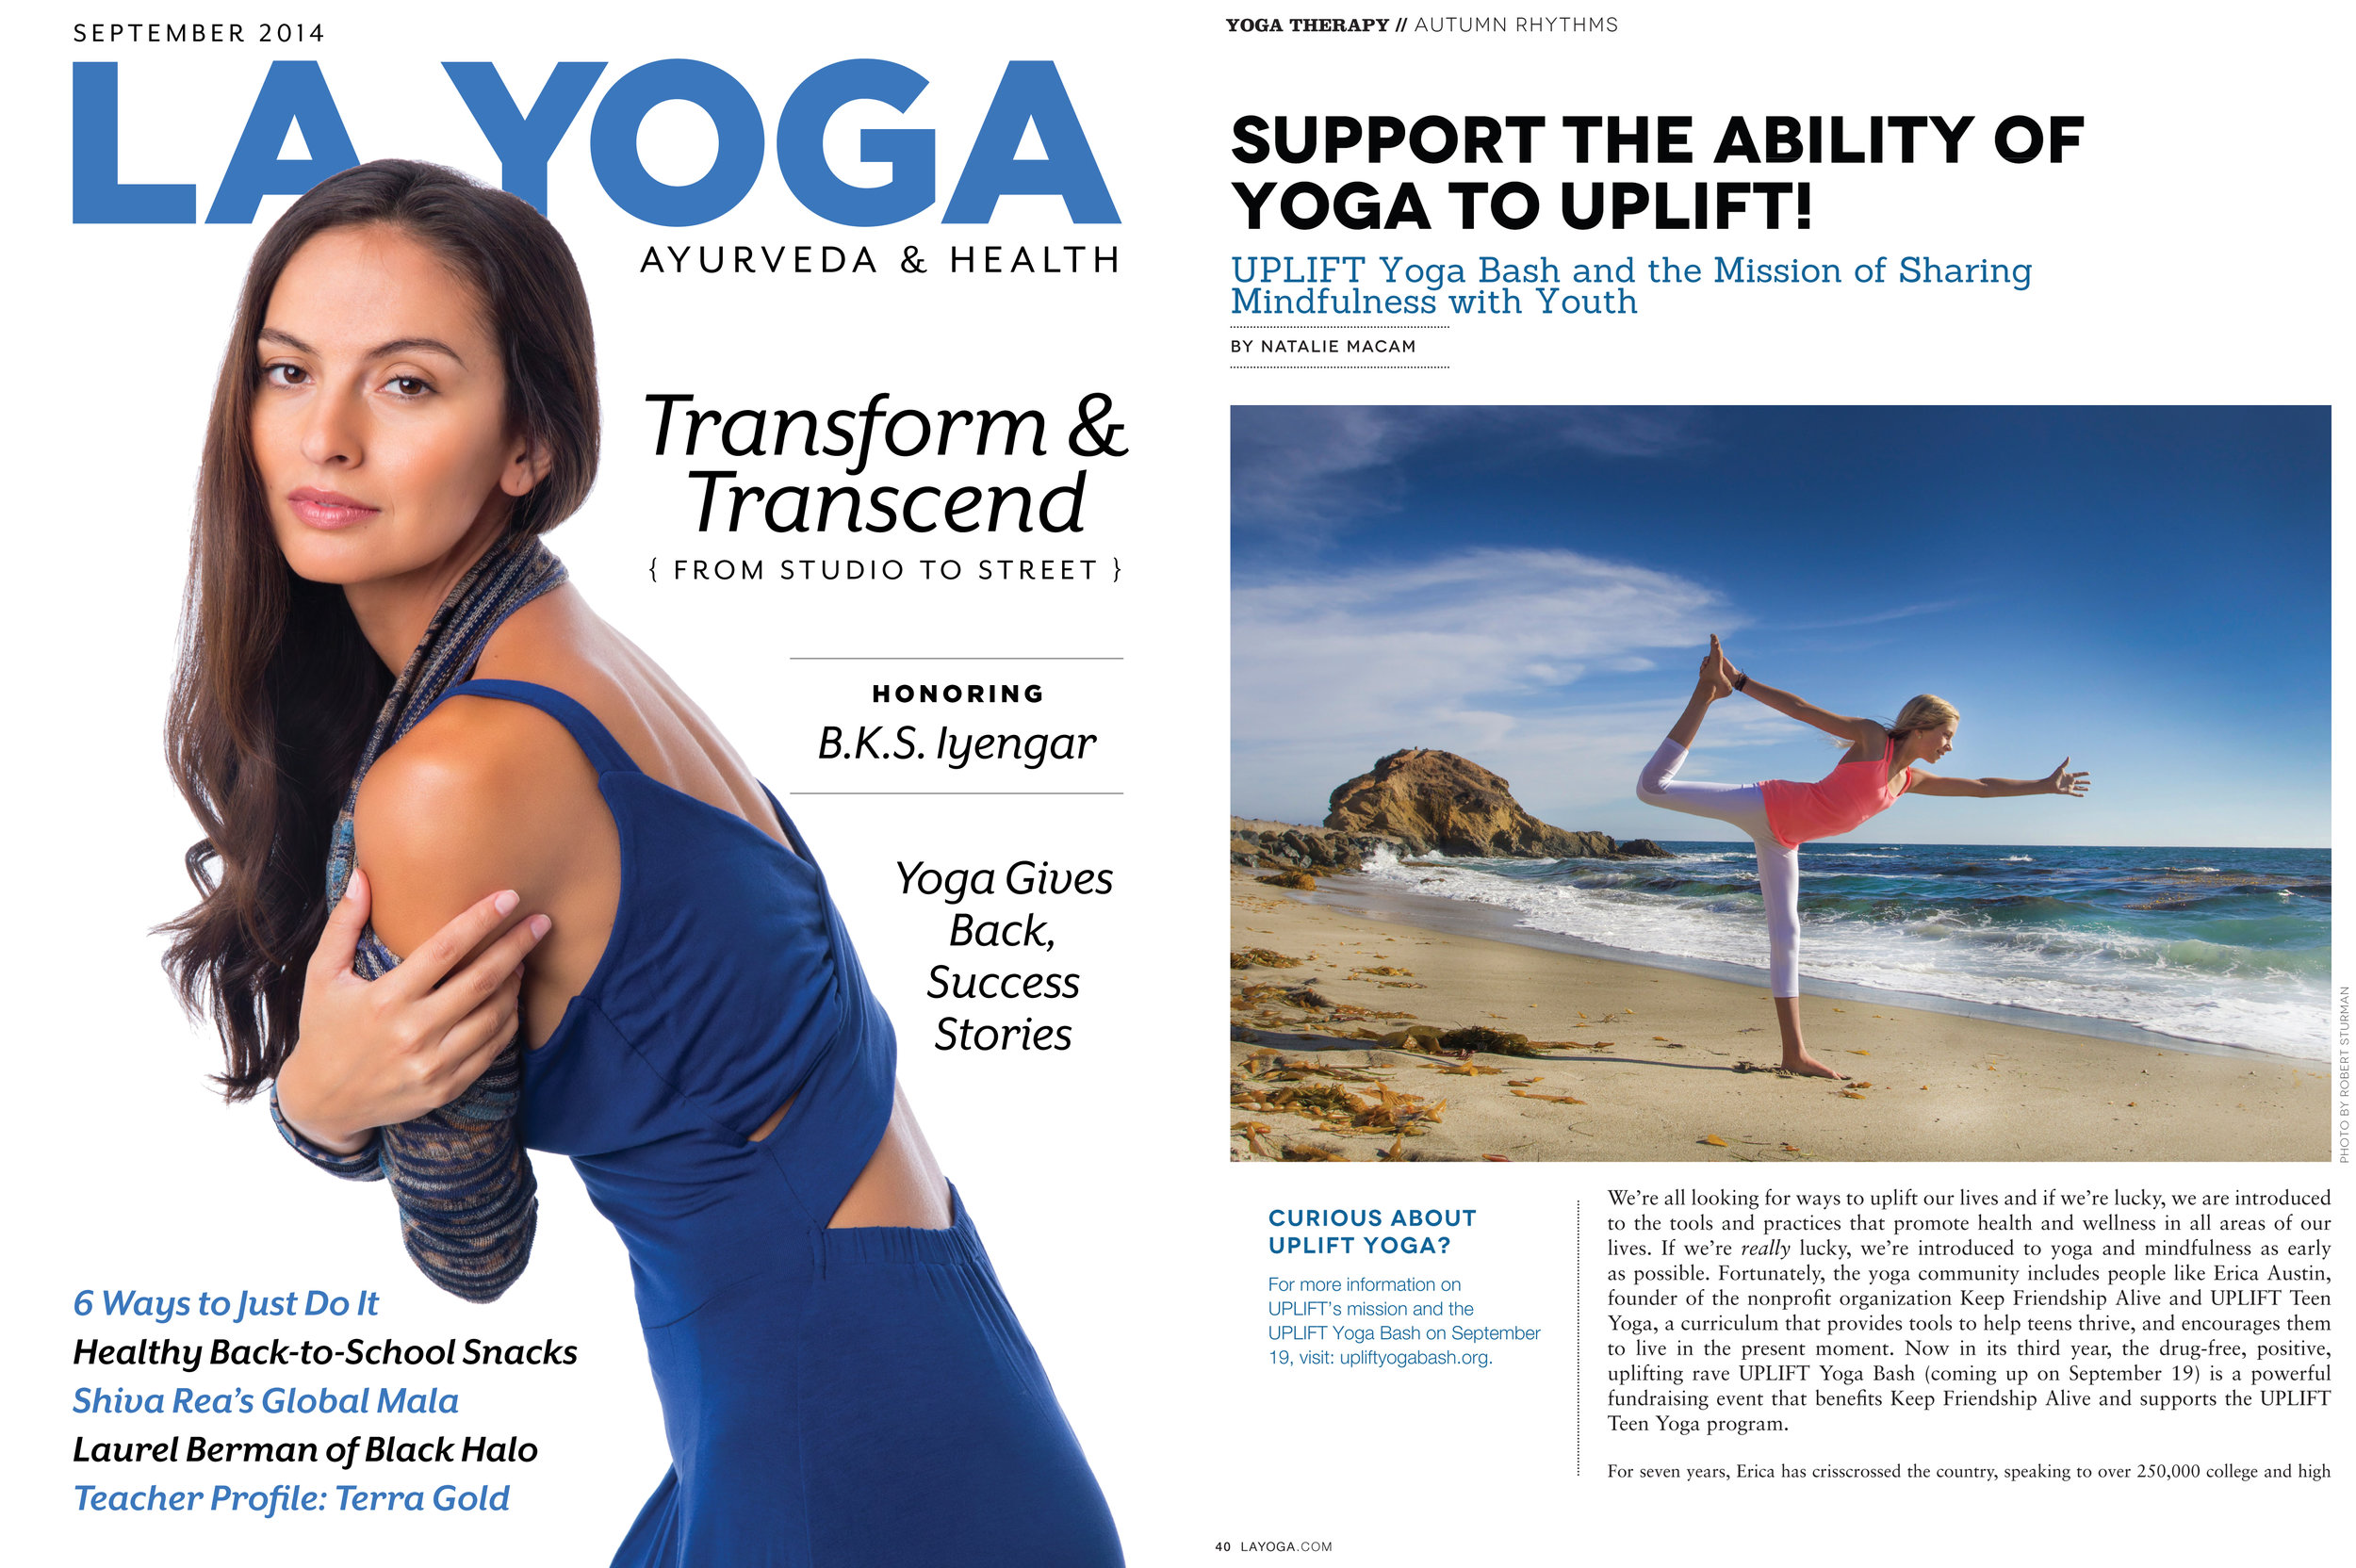 layoga_00027-cover and 40.jpg